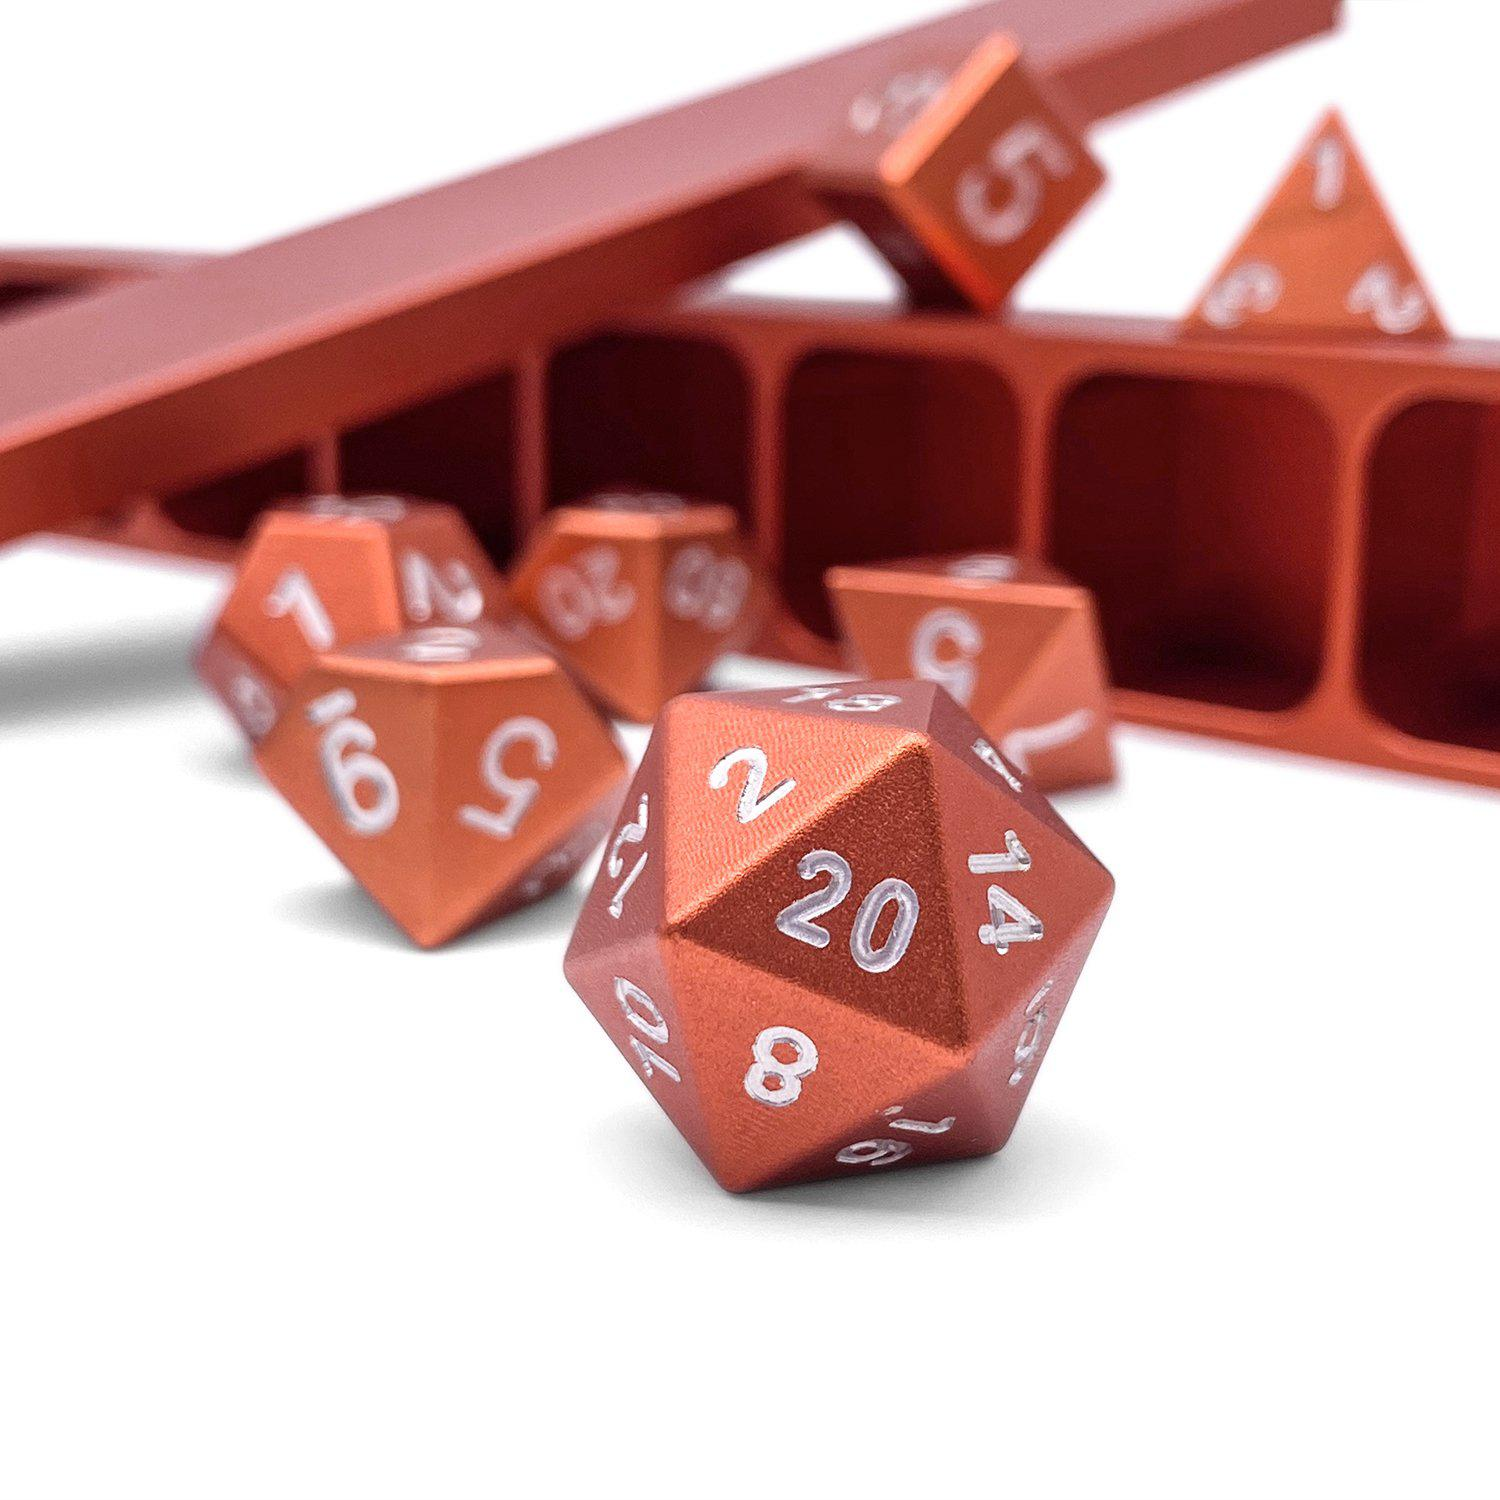 Precision CNC Aluminum Dice Set with Dice Vault – Chromatic Orange Dragon